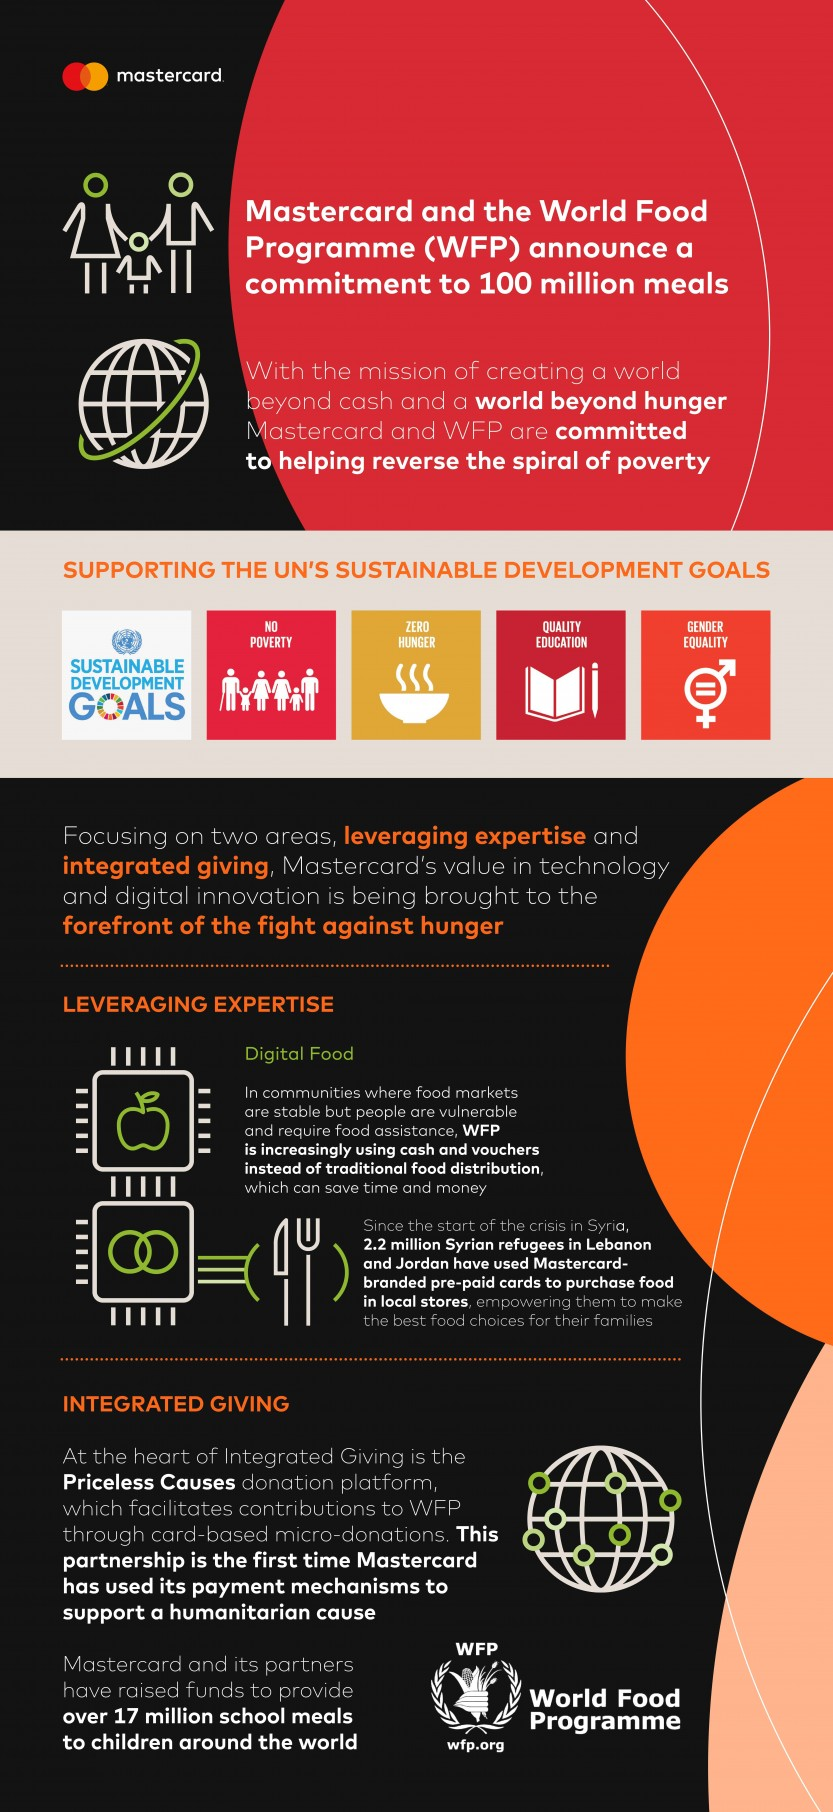 MAS_17_005_World_Food_Programme_Infographic_final-min-min(1)